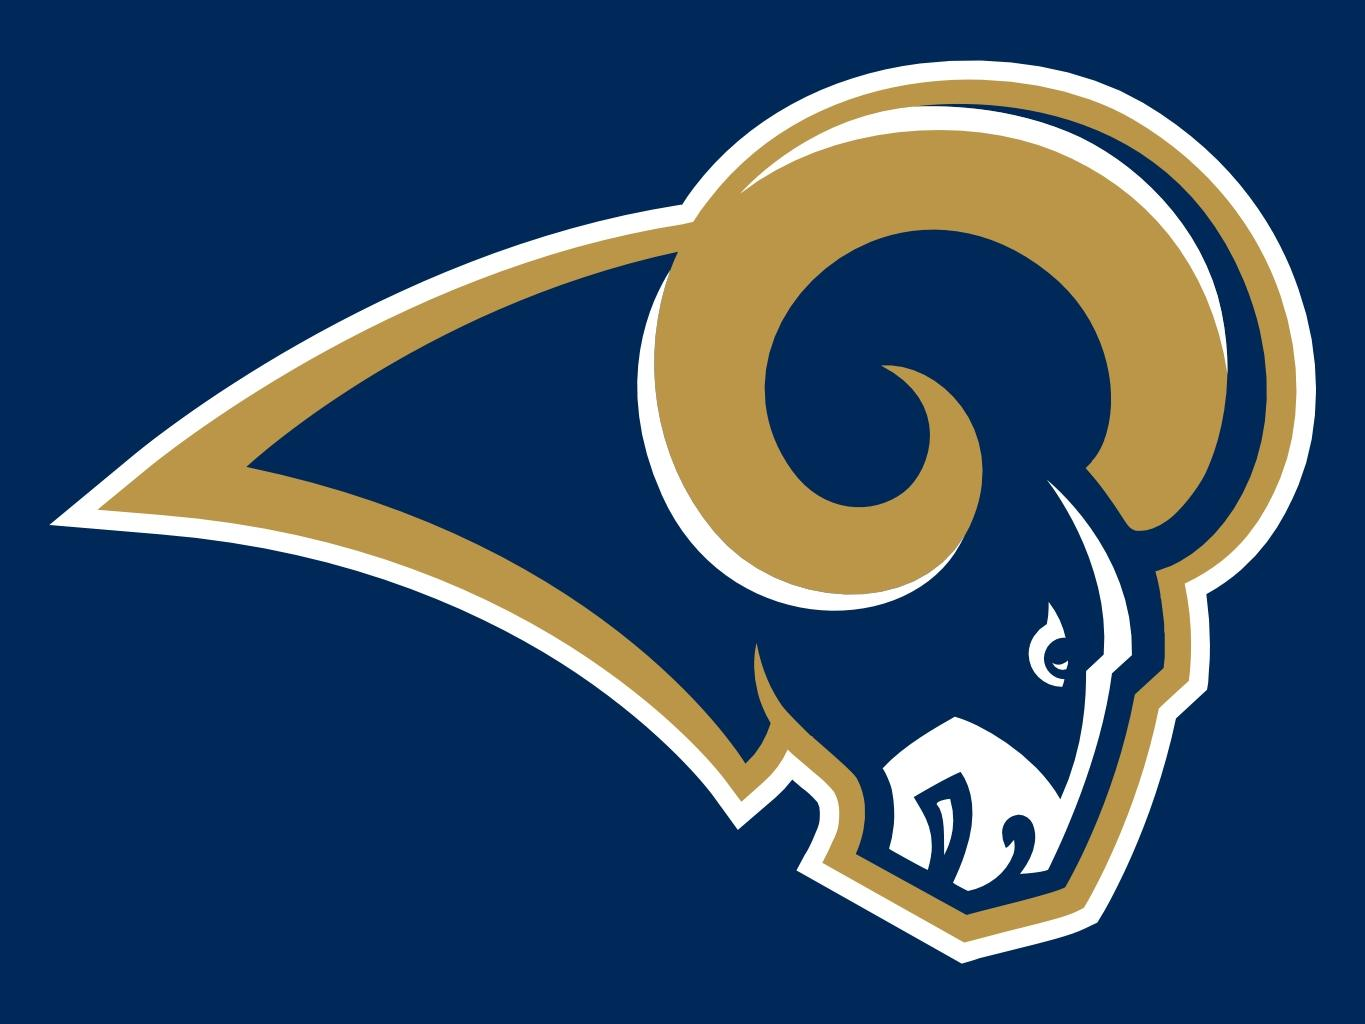 New St Louis Rams Stadium Likely Would Need Voter Approval Kbia